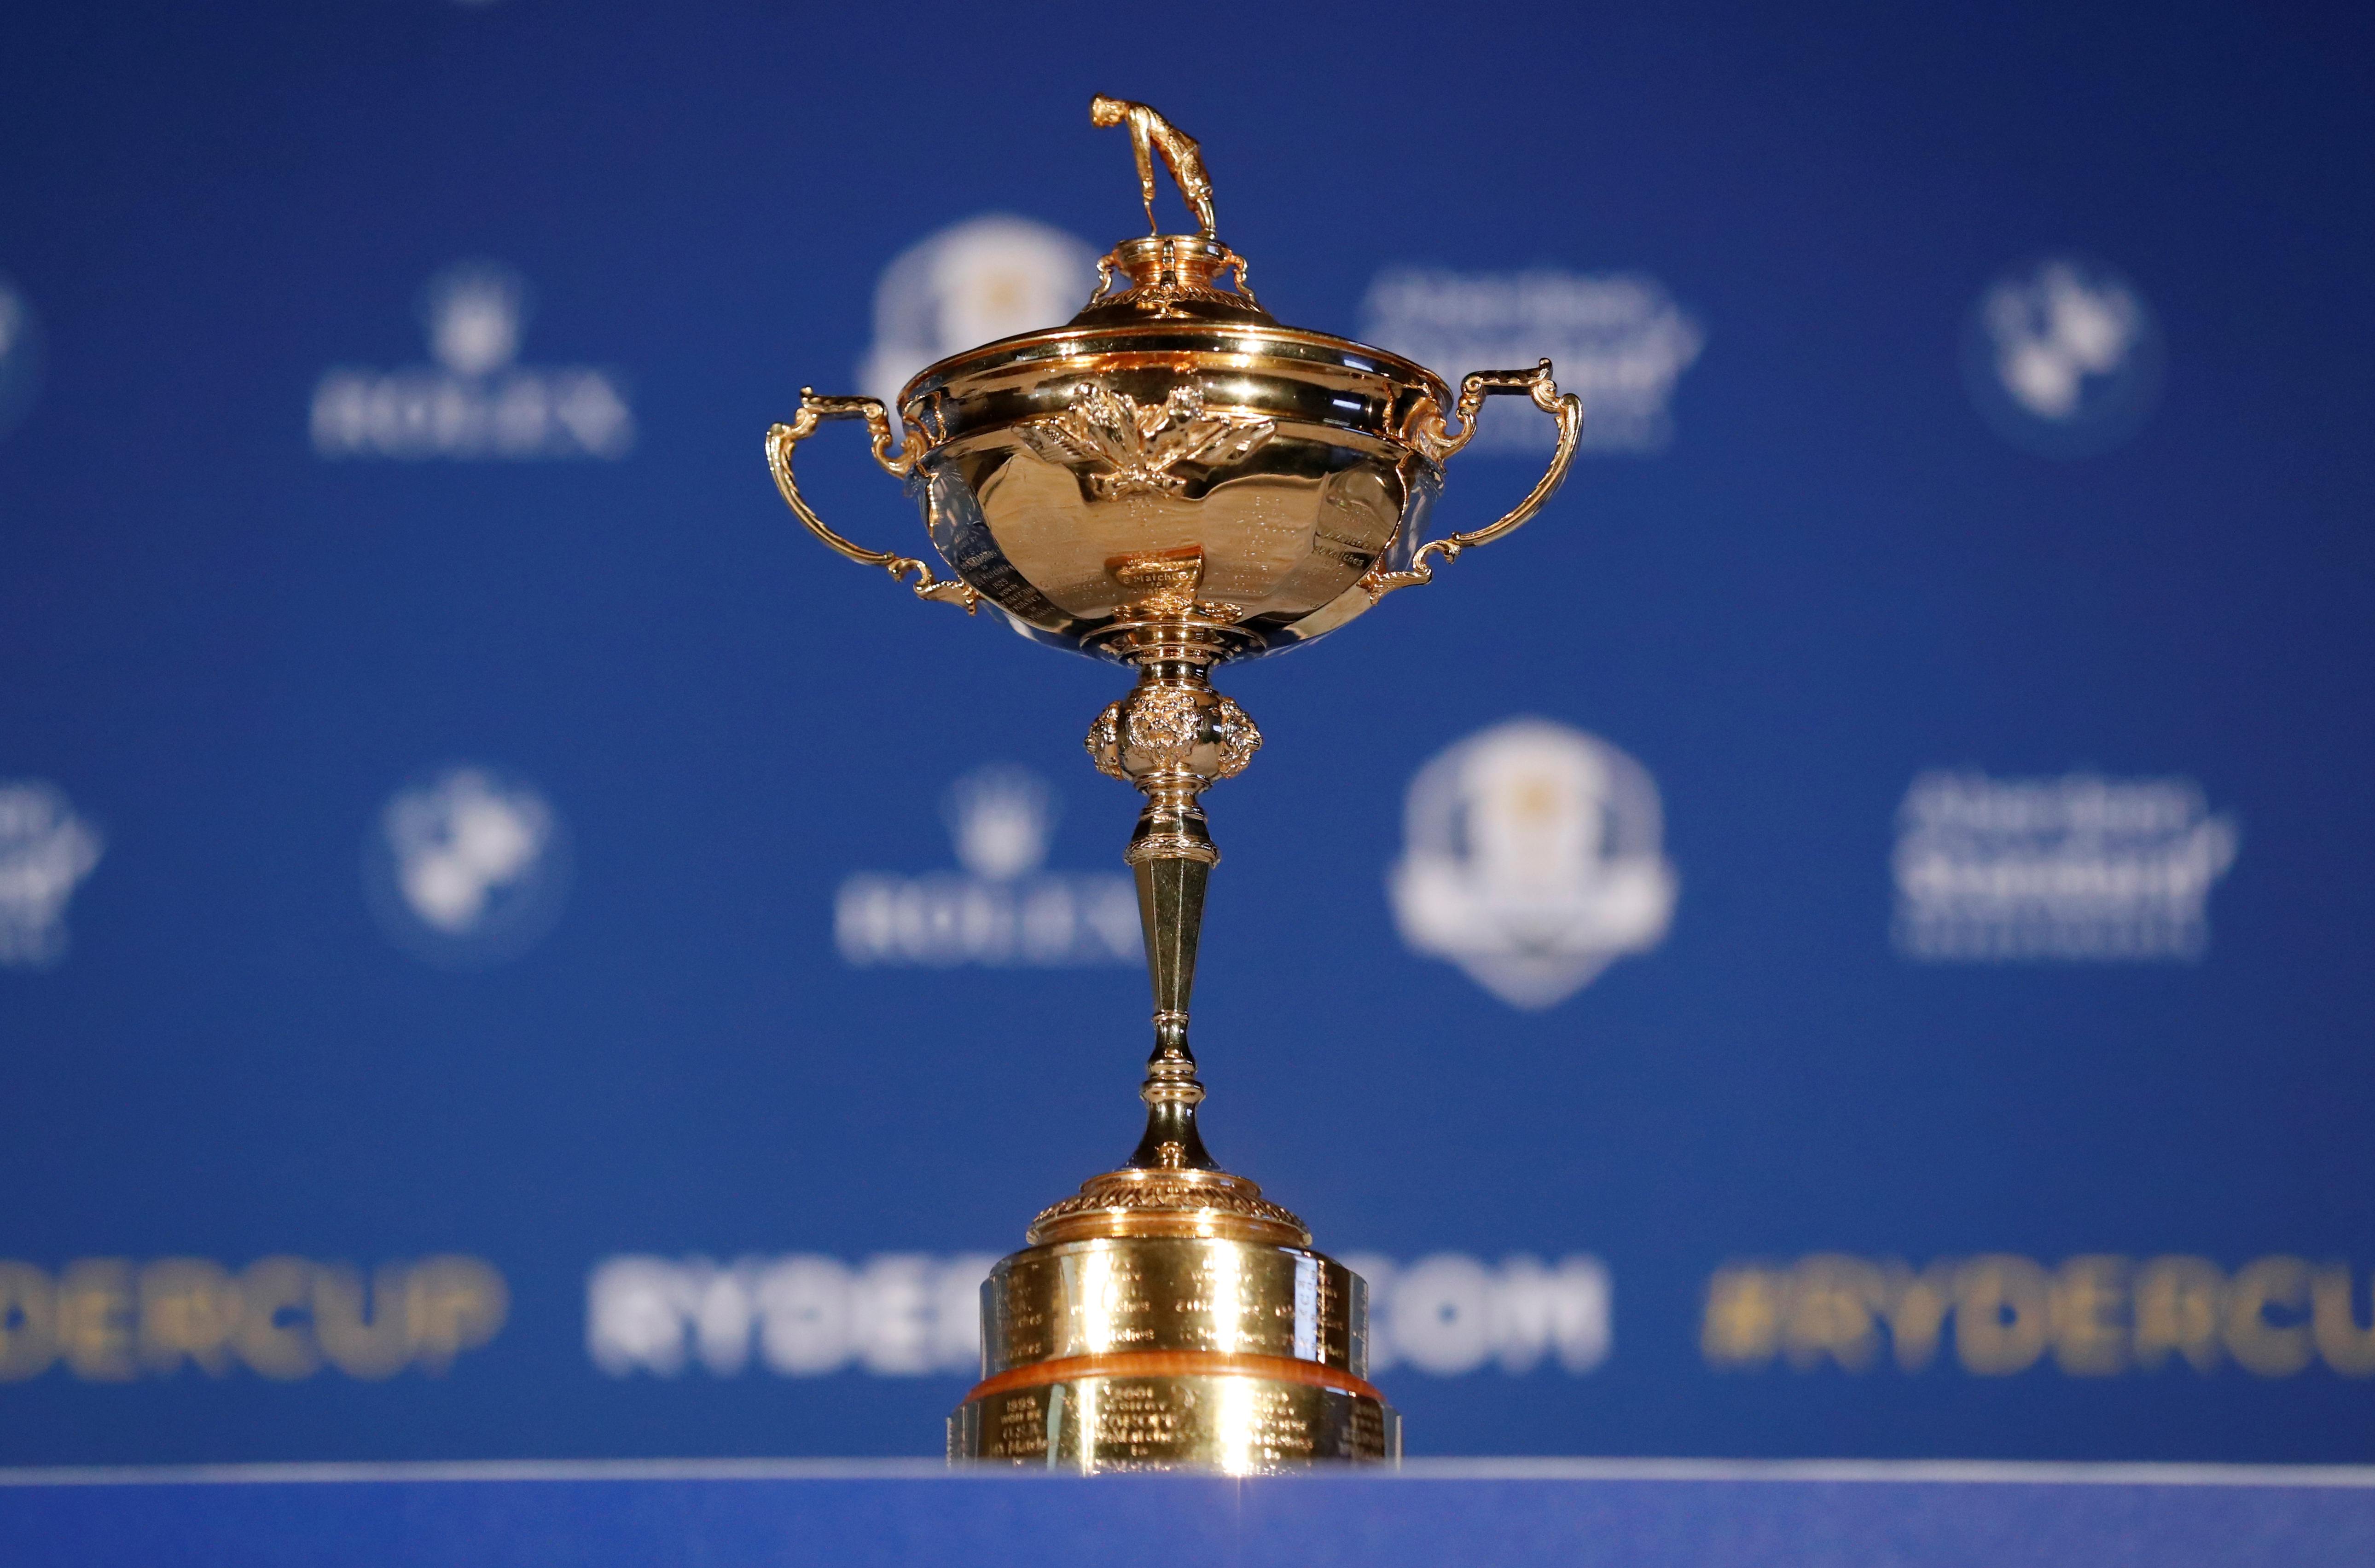 FILE PHOTO - Golf - Ryder Cup - European Tour announce captain for 2020 Ryder Cup - Wentworth Club, Virginia Water, Britain - January 8, 2019   General view of the Ryder Cup before the announcement   Action Images via Reuters/Peter Cziborra